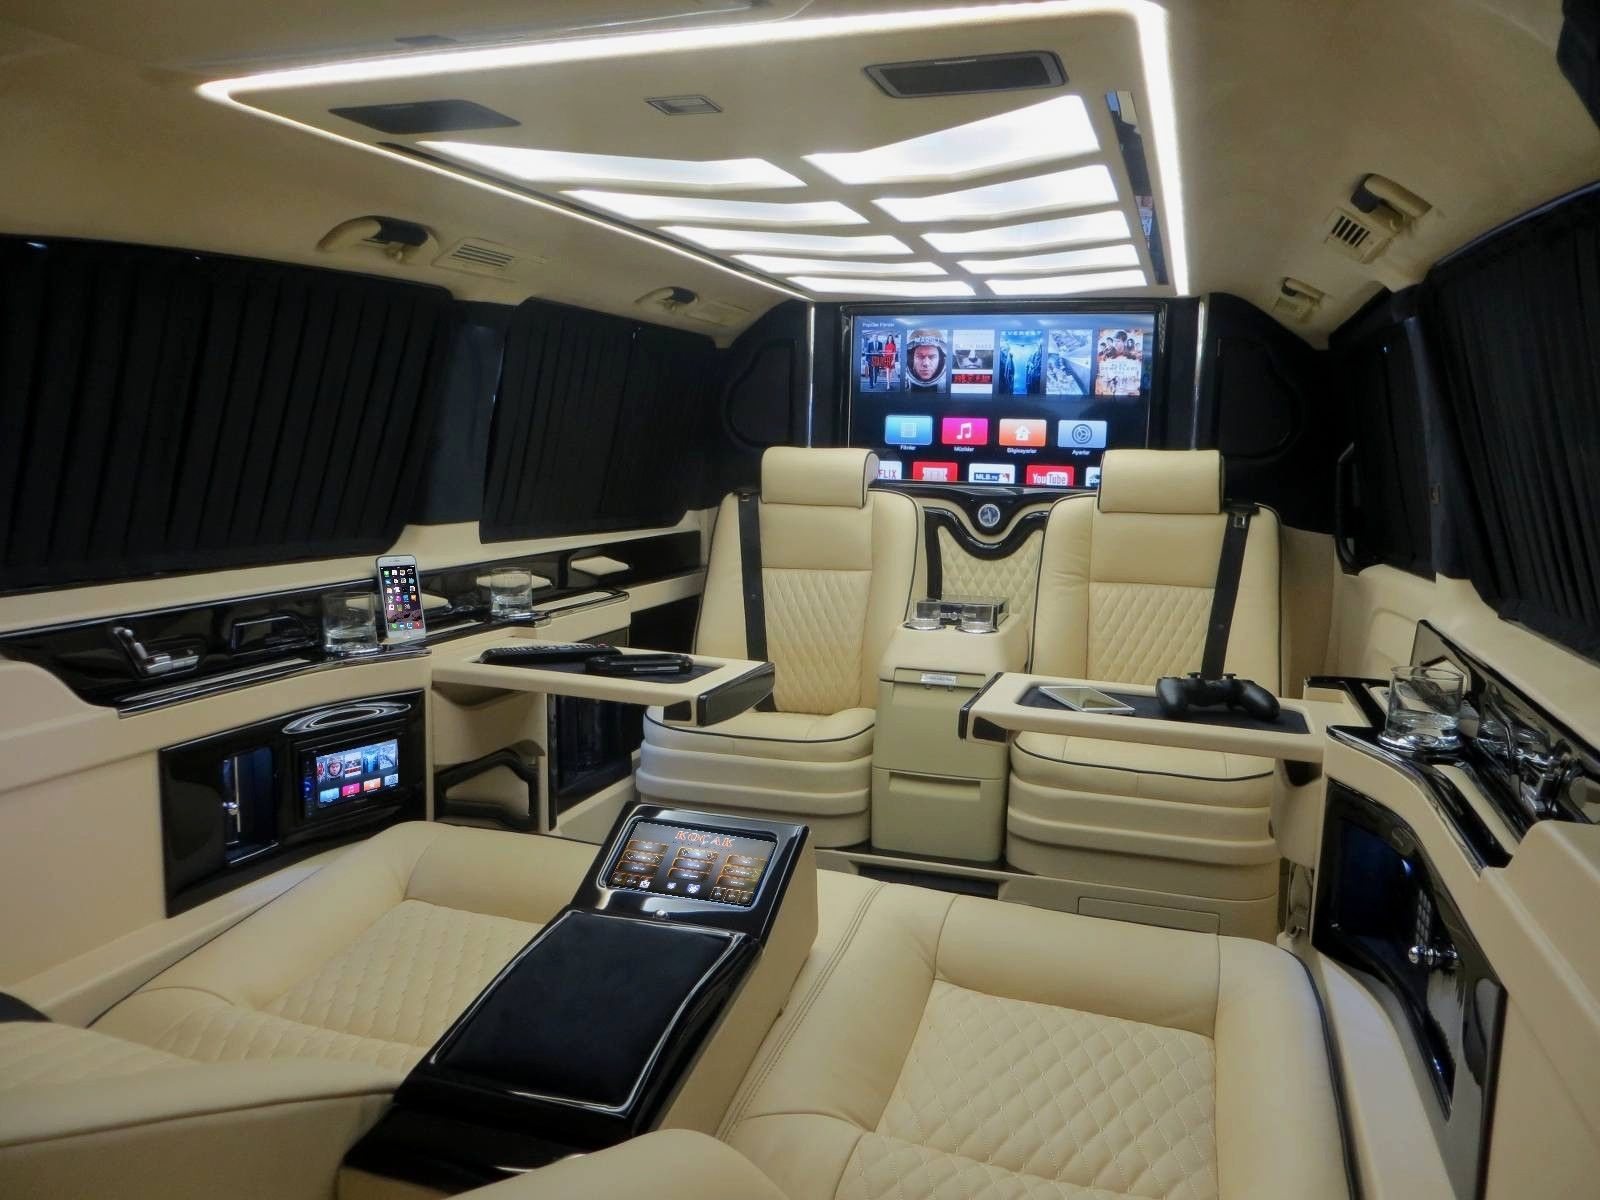 They're Calling This The Maybach Of Mercedes-Benz Vans ...